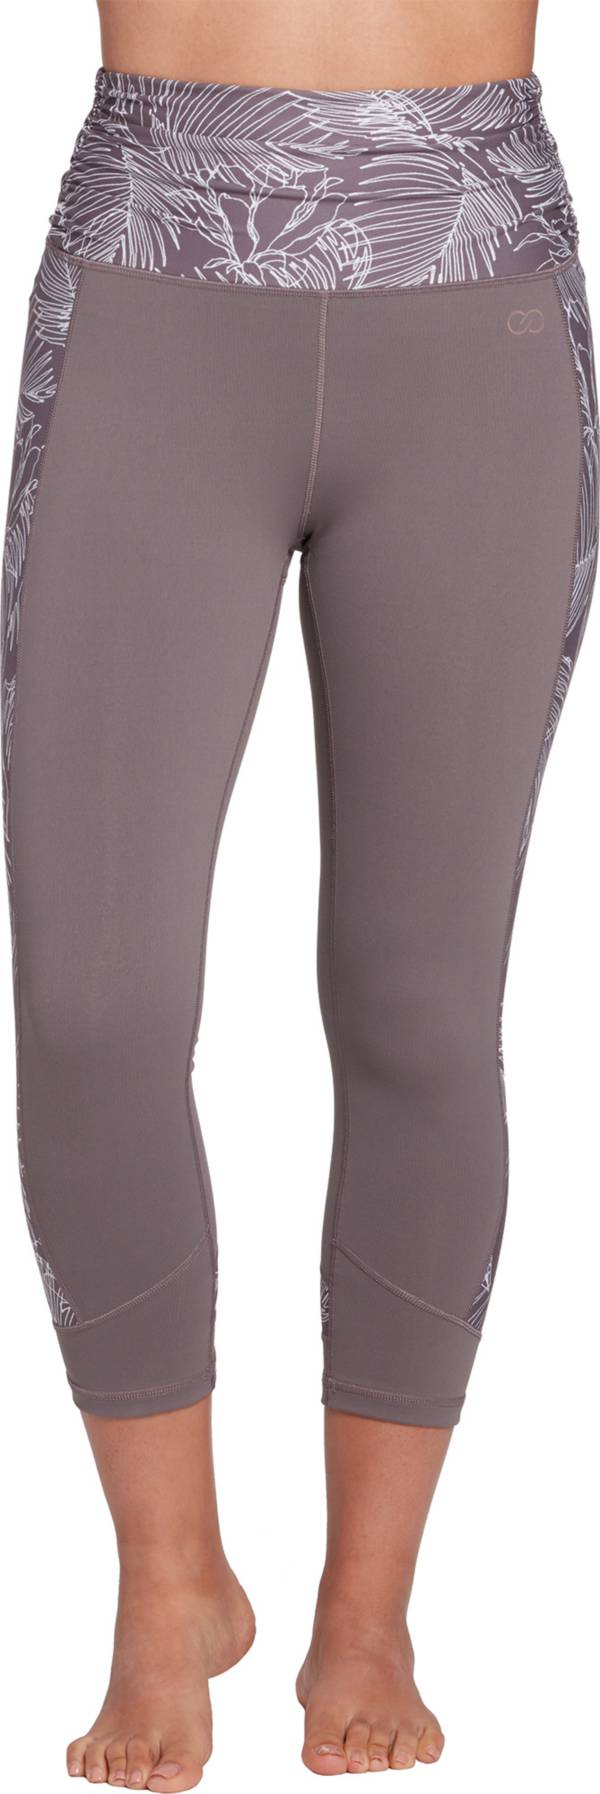 CALIA by Carrie Underwood Women's Essential Ruched Print Capris product image